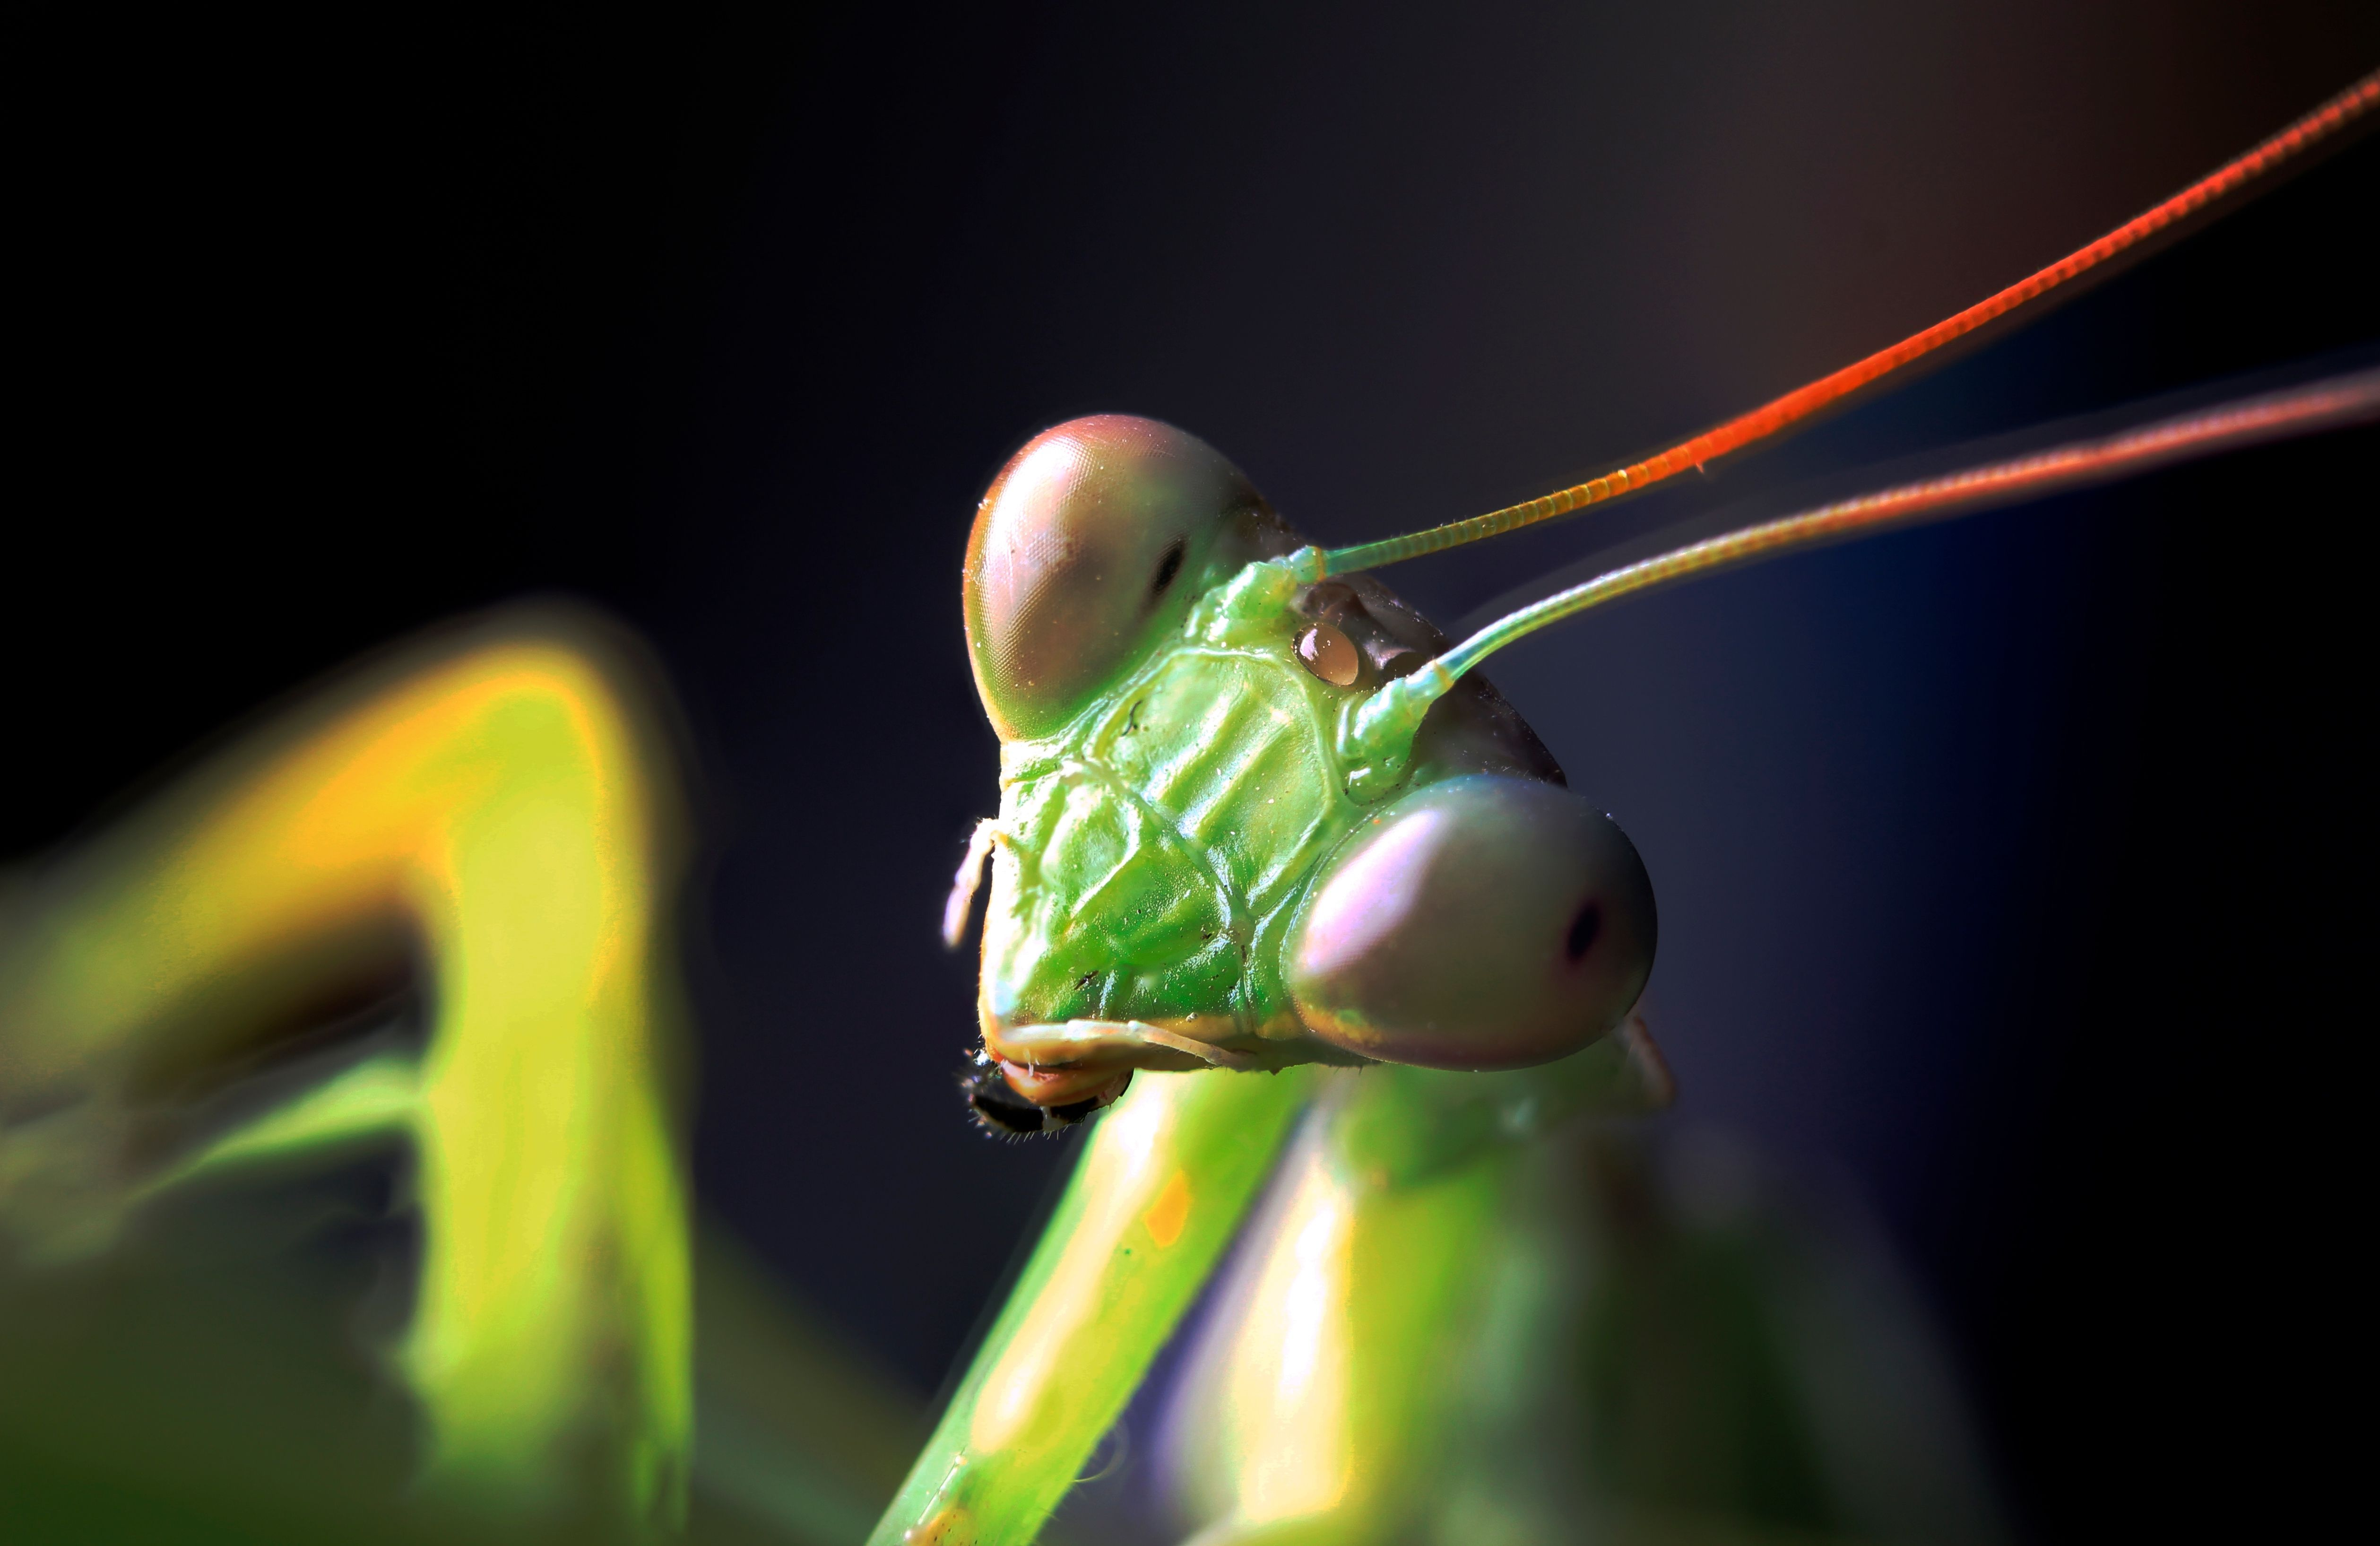 If you're truly terrified of black widows, consider keeping a praying mantis as a pet.